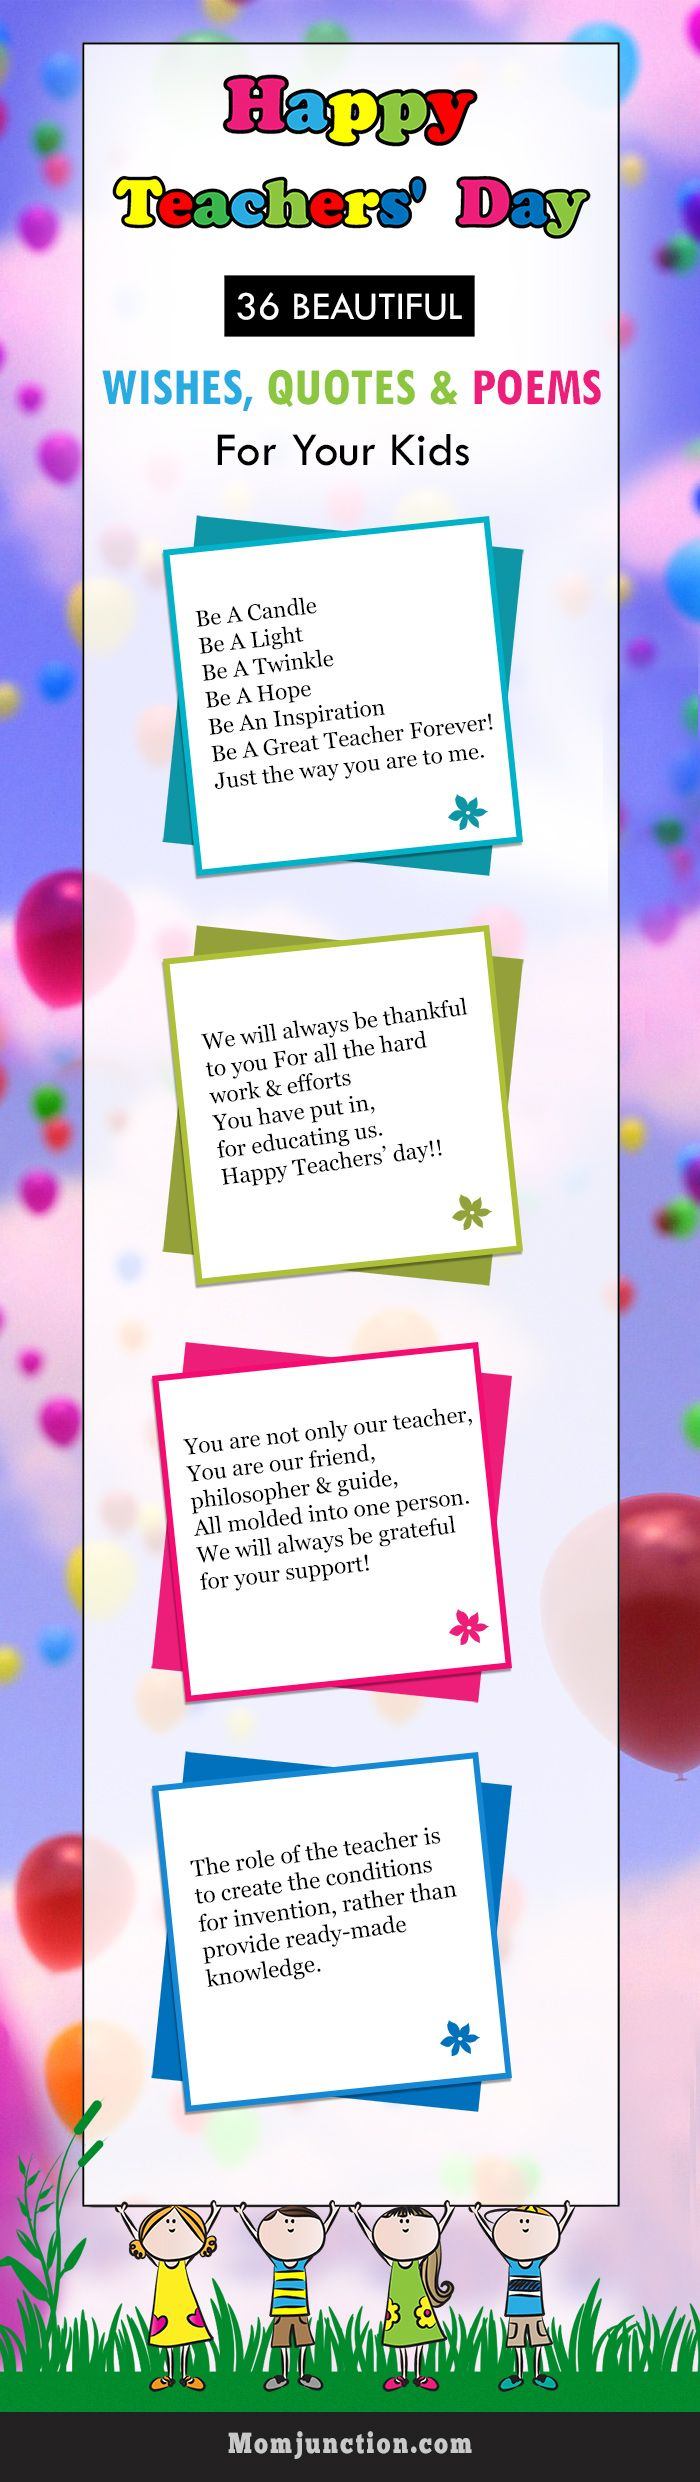 36 Beautiful Teacher S Day Quotes Wishes Poems For Kids Teachers Day Wishes Teachers Day Happy Teachers Day